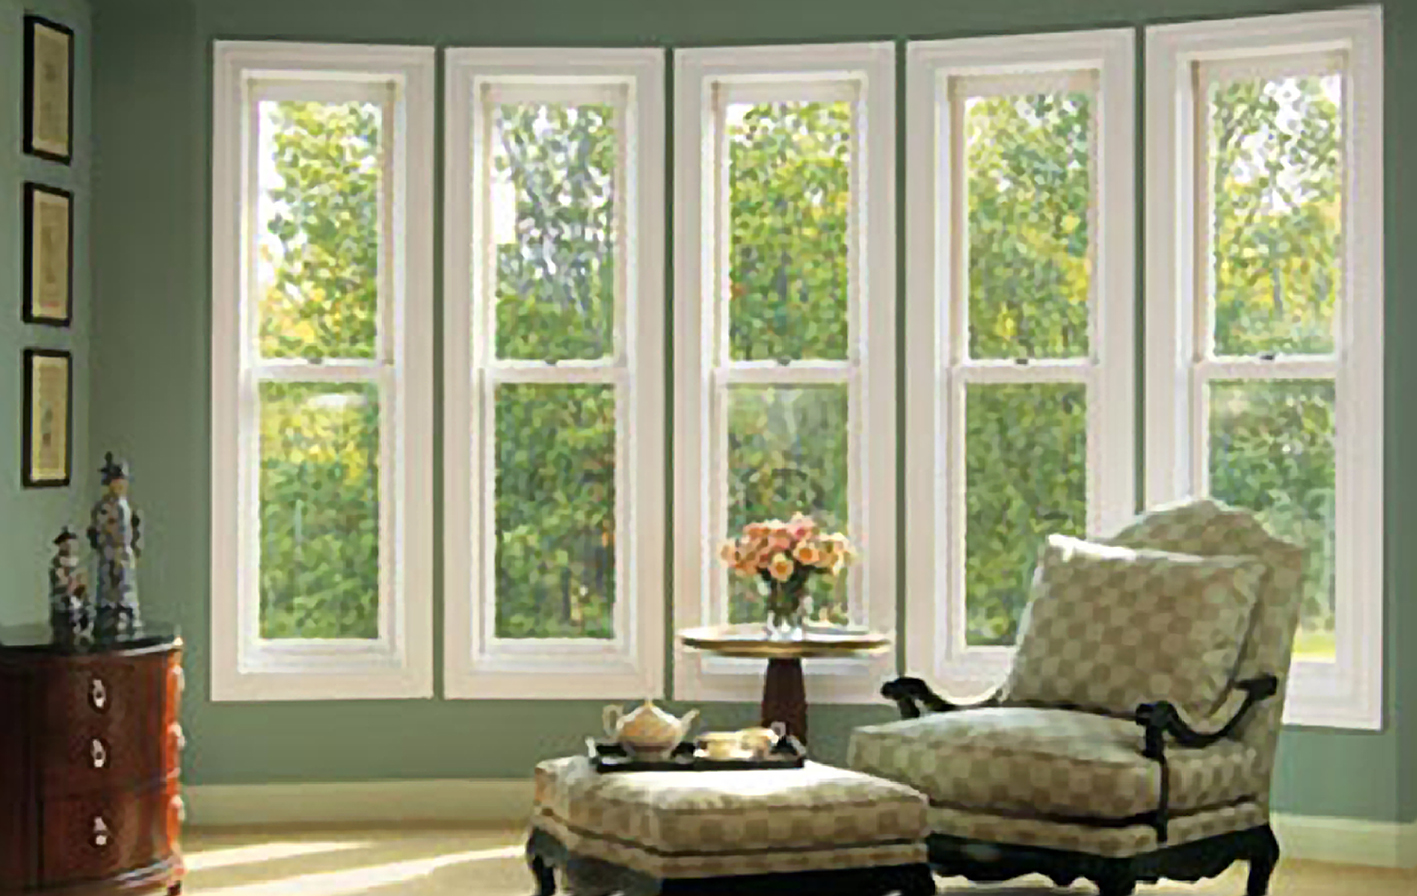 New and replacement windows